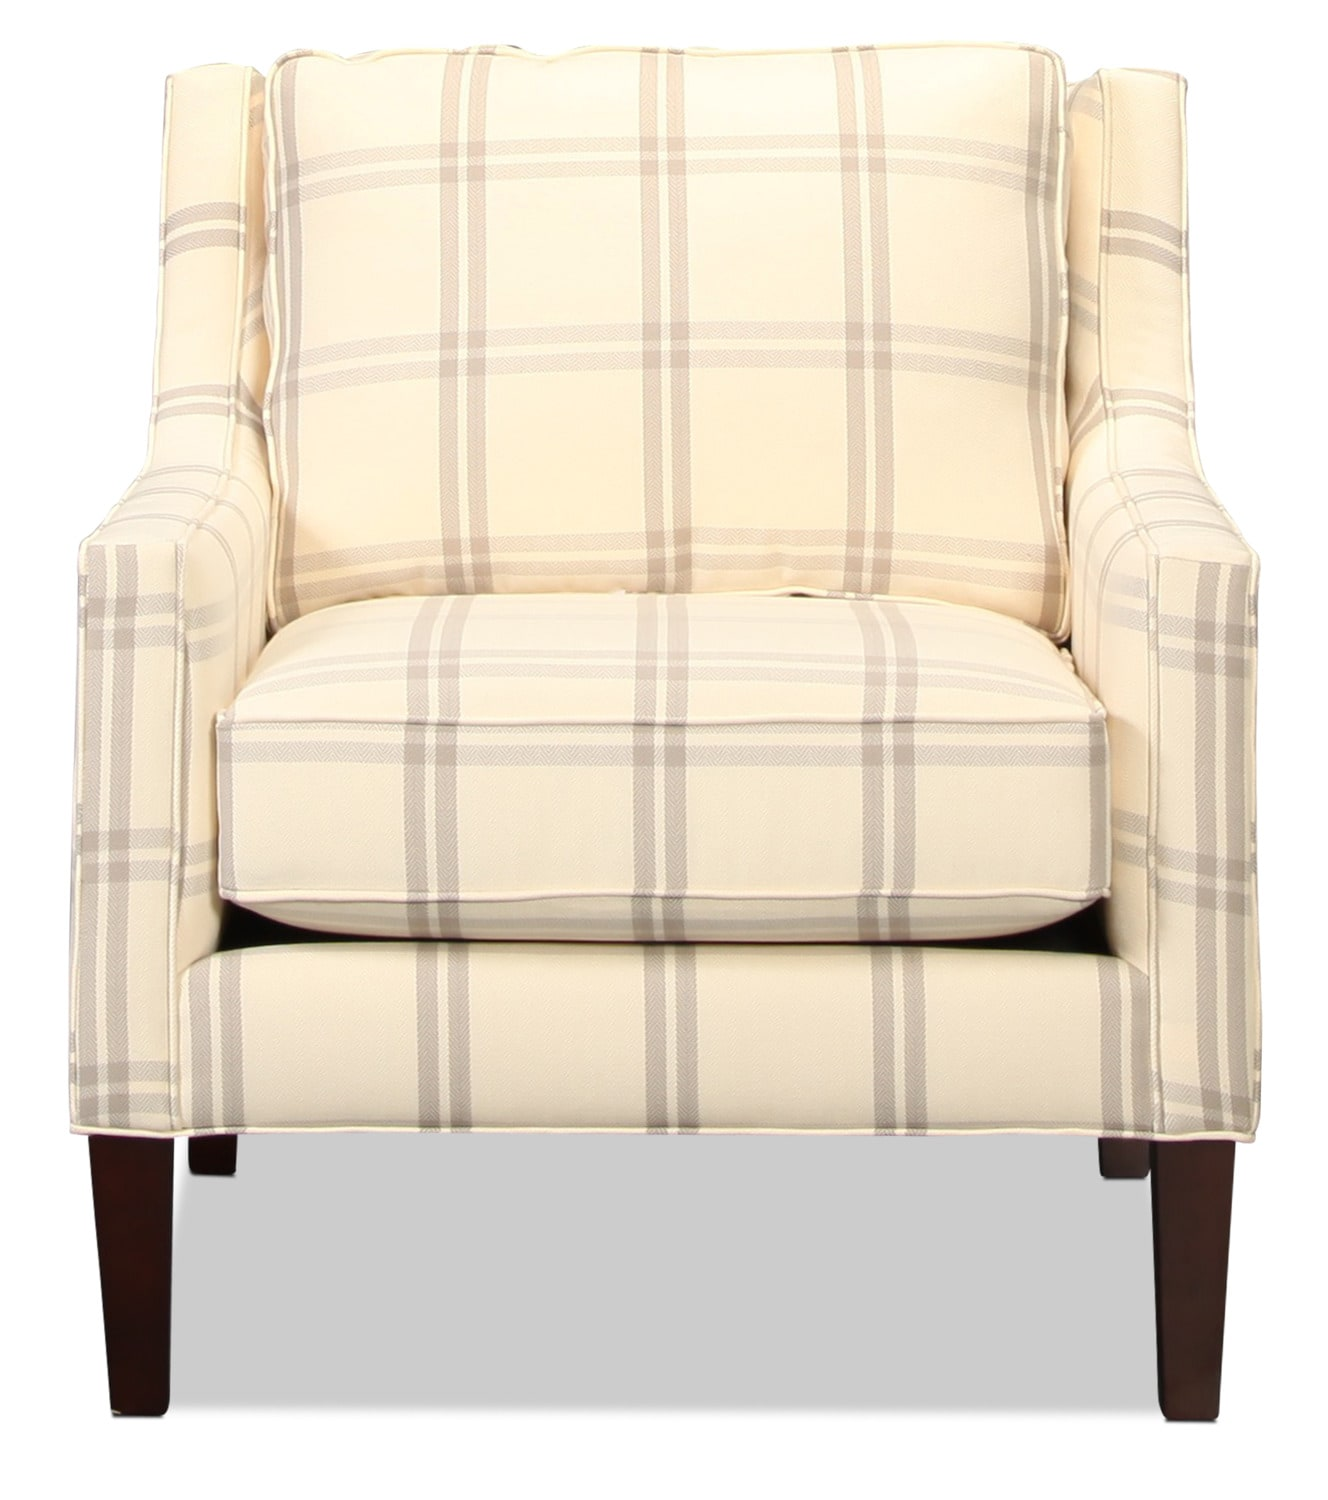 Living Room Furniture - Dover Accent Chair - Plaid